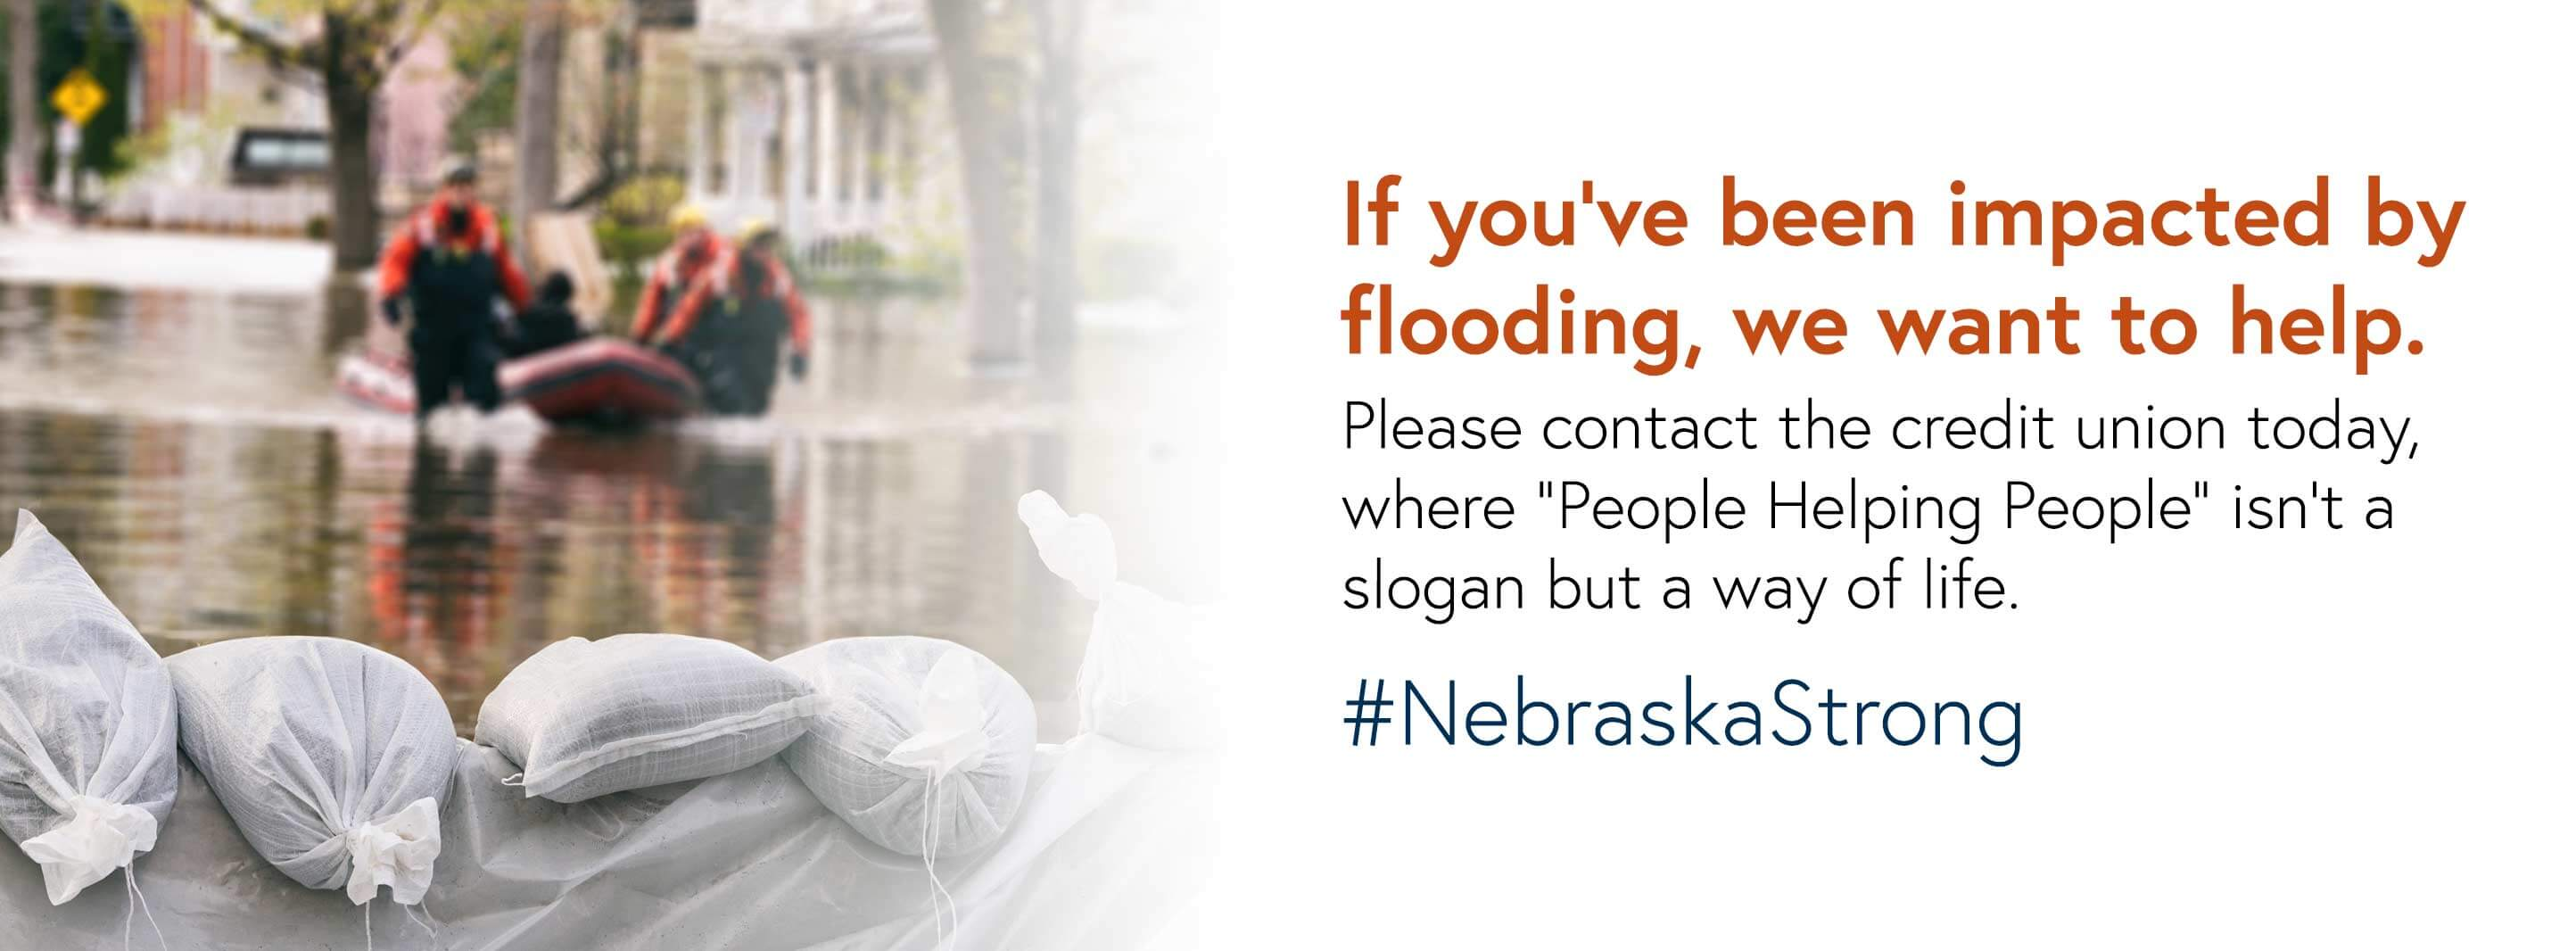 If you've been impacted by flooding, we want to help. Please contact the credit union today, where